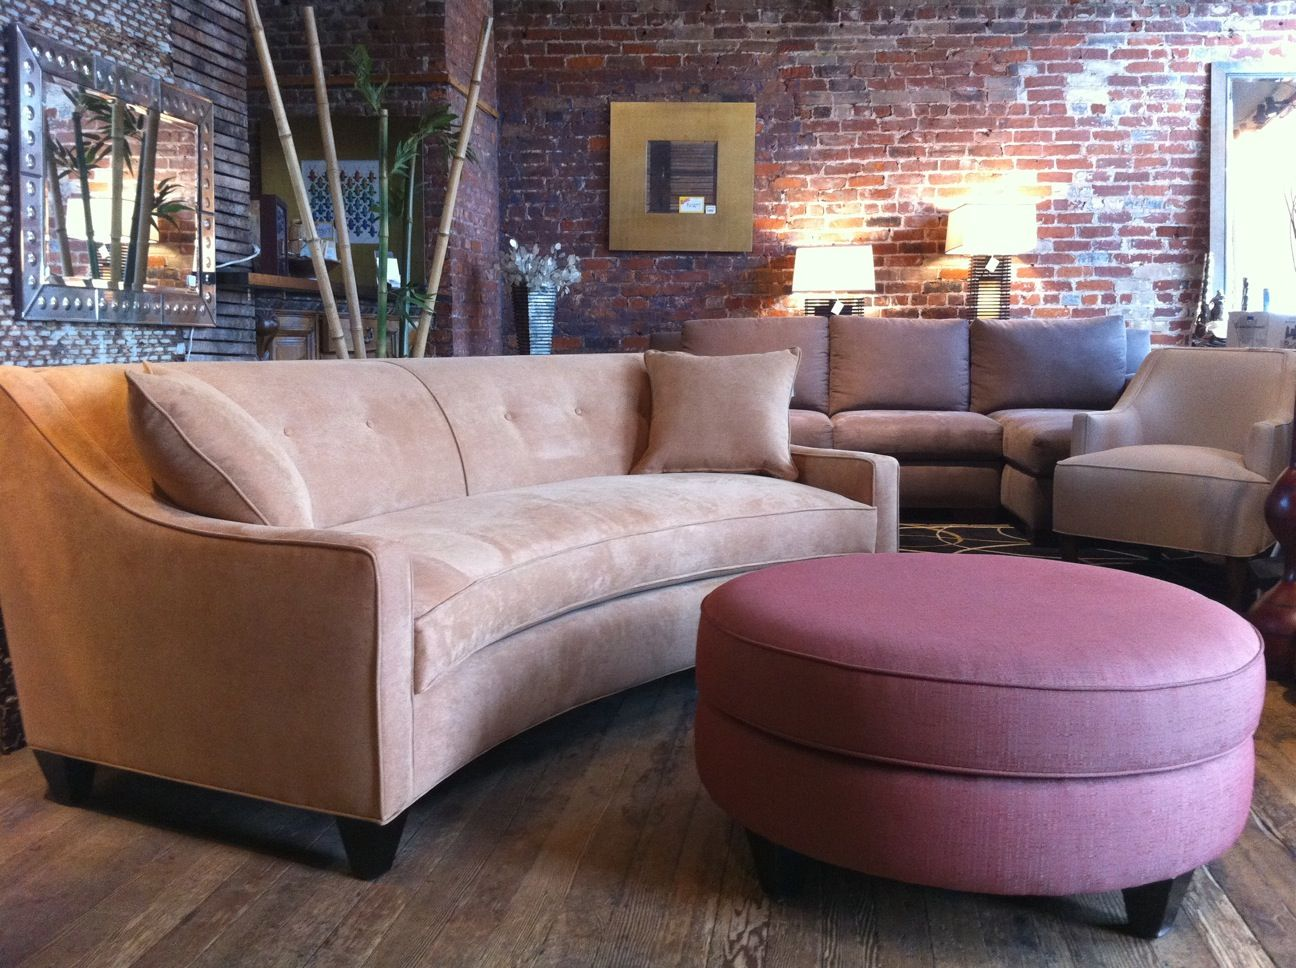 Sofa 101 Curved Vs Straight Sofas For Small Spaces Curved